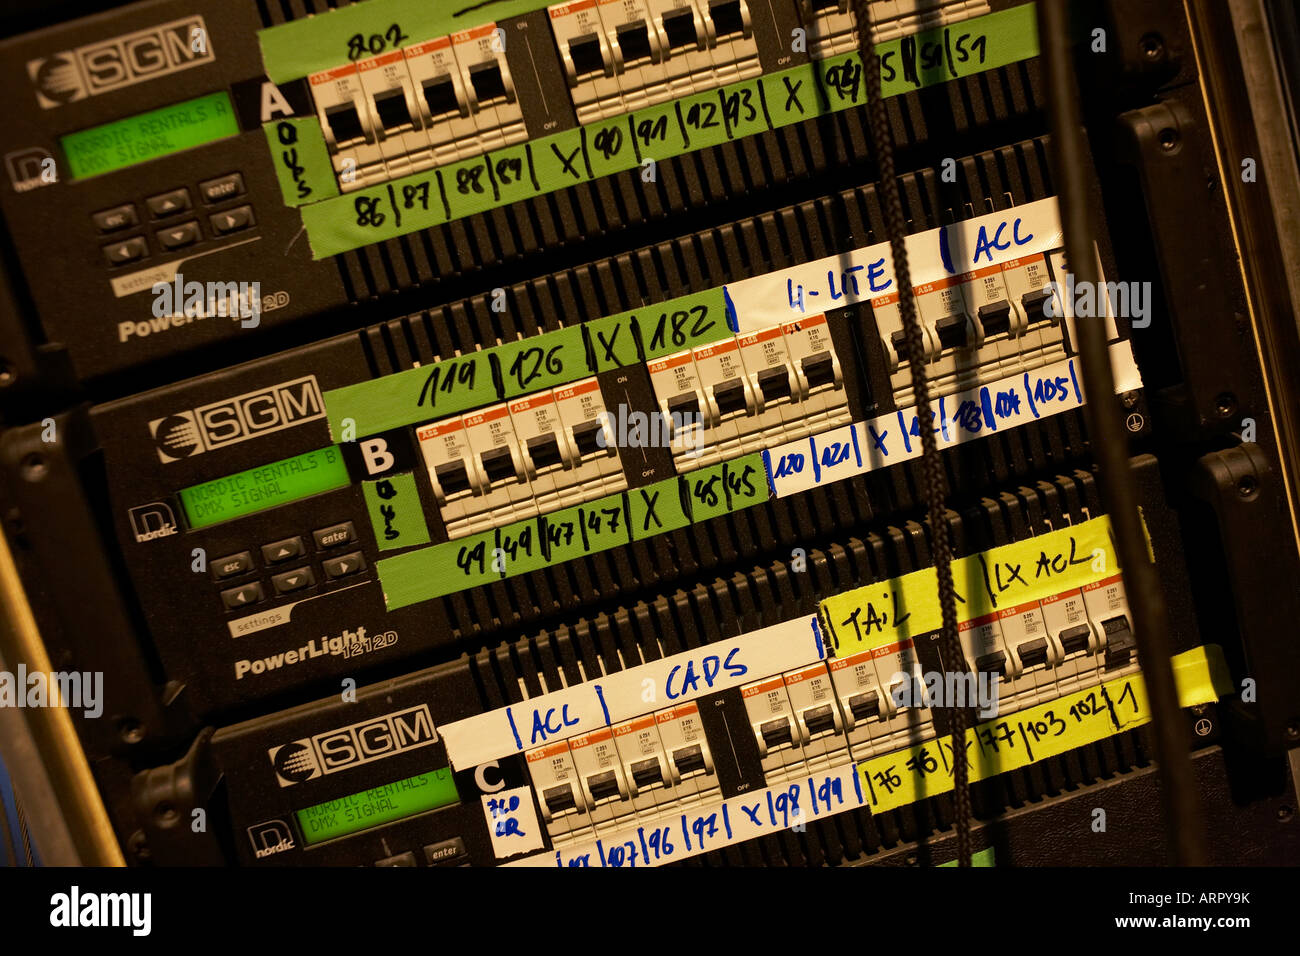 Output digital audio equipment technology belonging to rock band Status Quo on European tour at L'Aeronef in - Stock Image